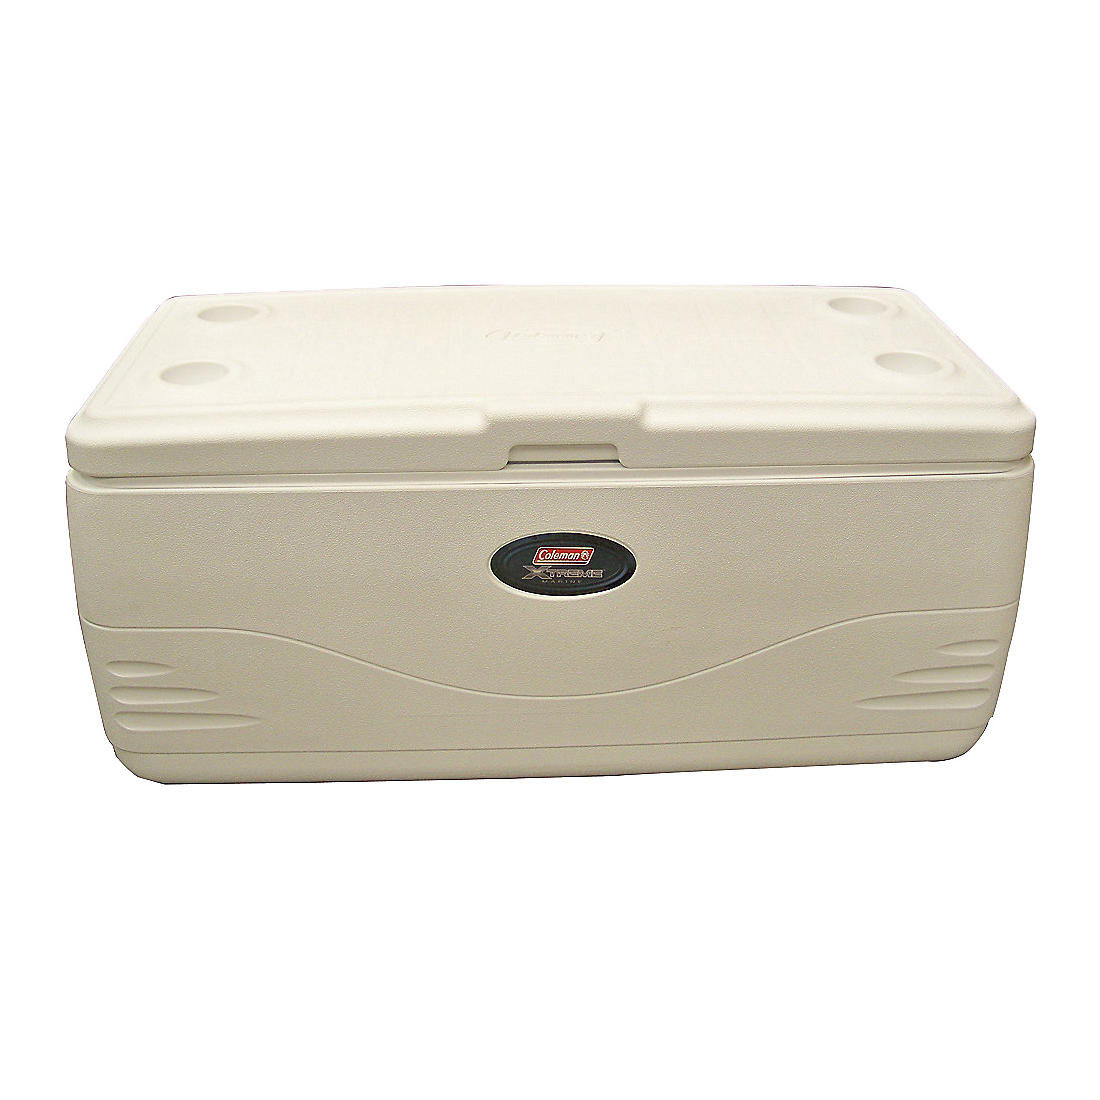 Coleman Inland Performance Series 150-Qt  Marine Cooler - White